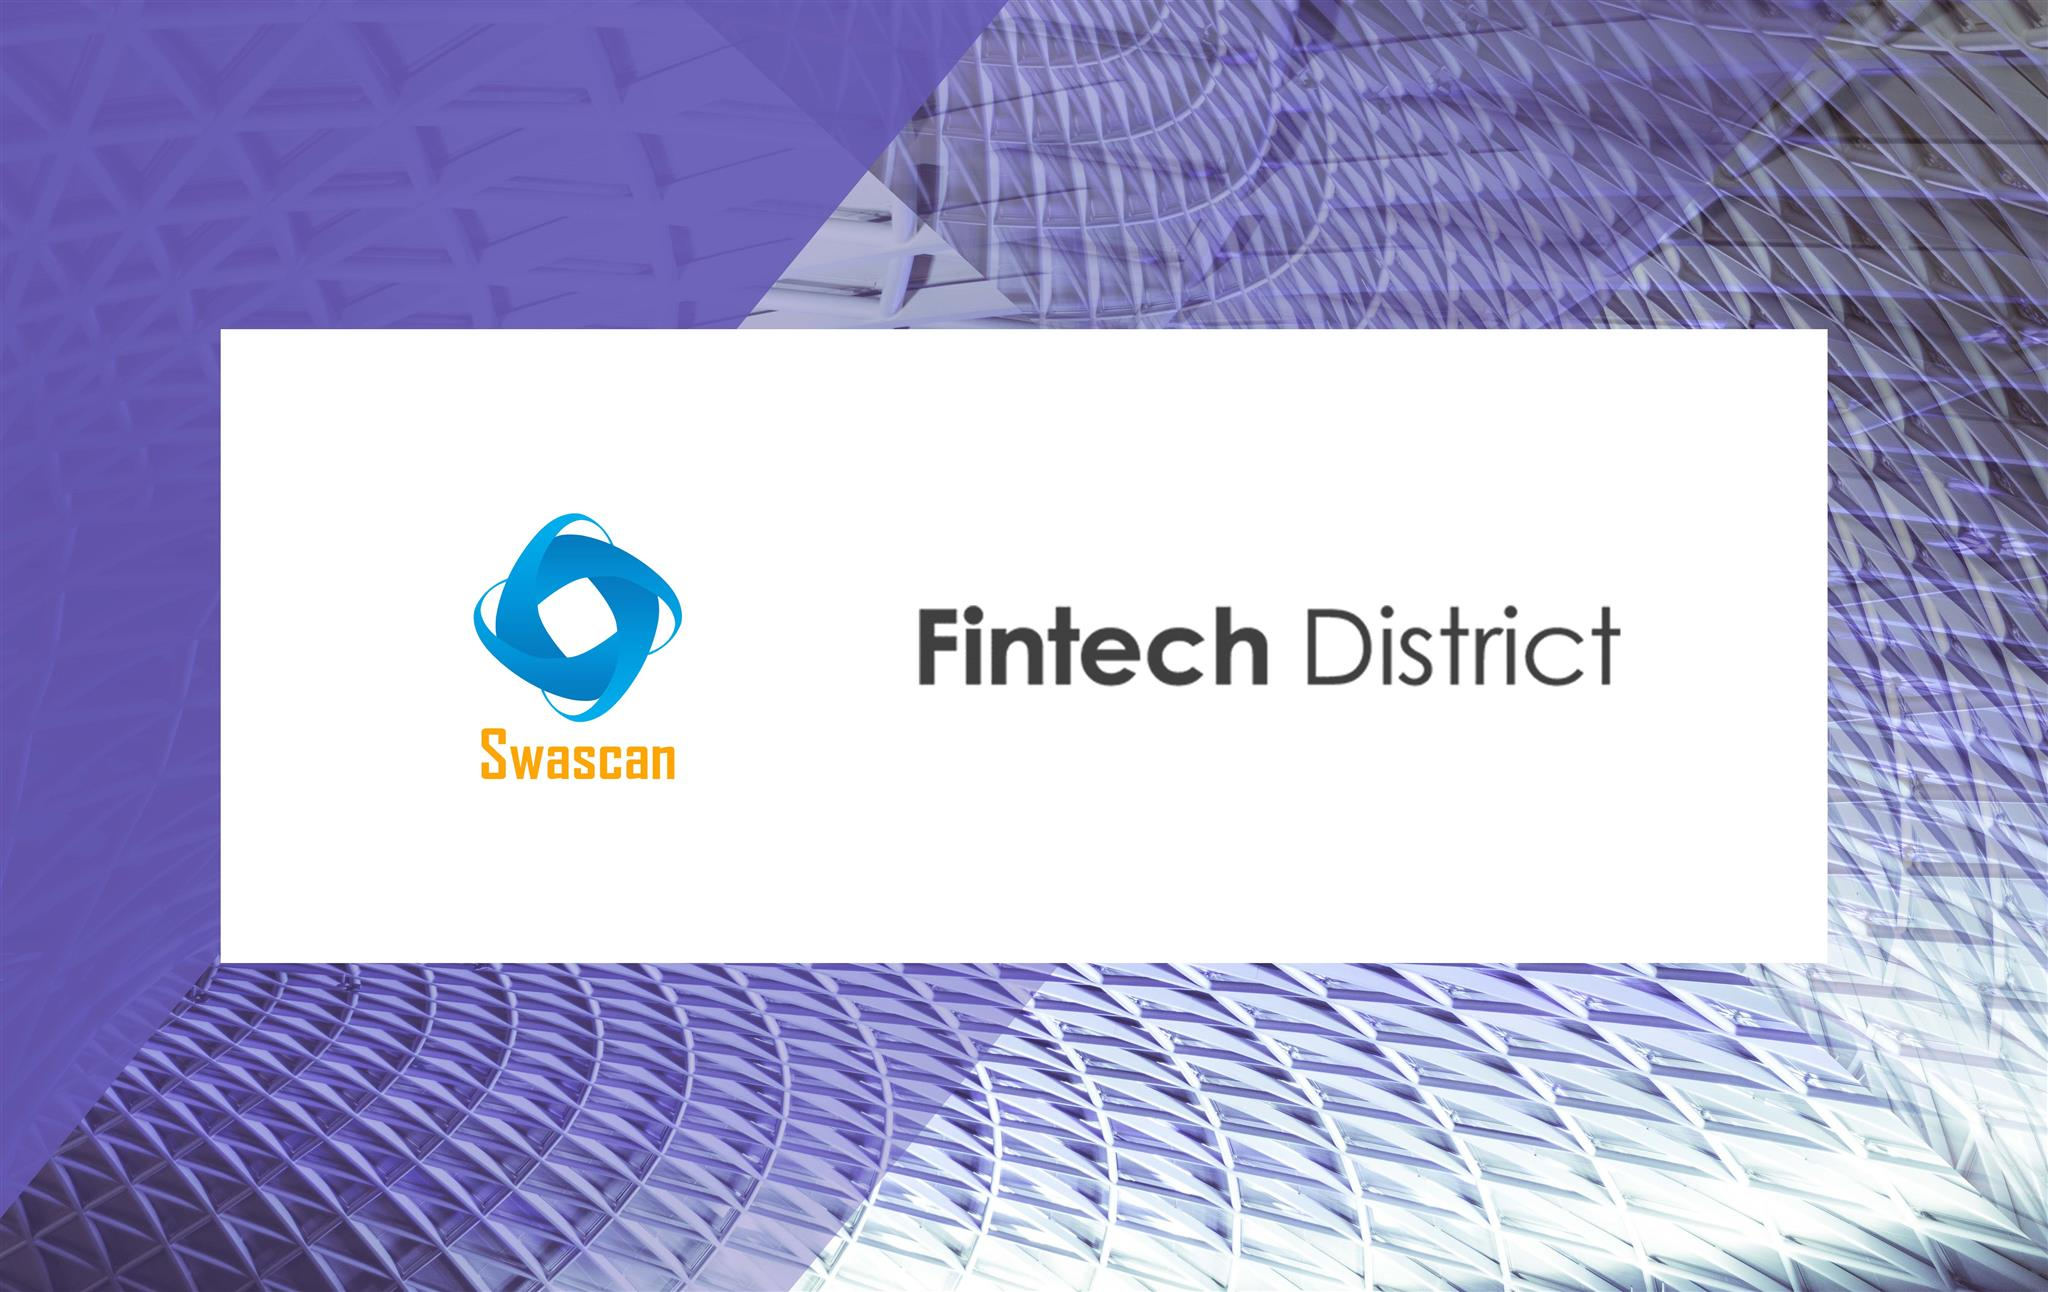 Swascan Fintech District